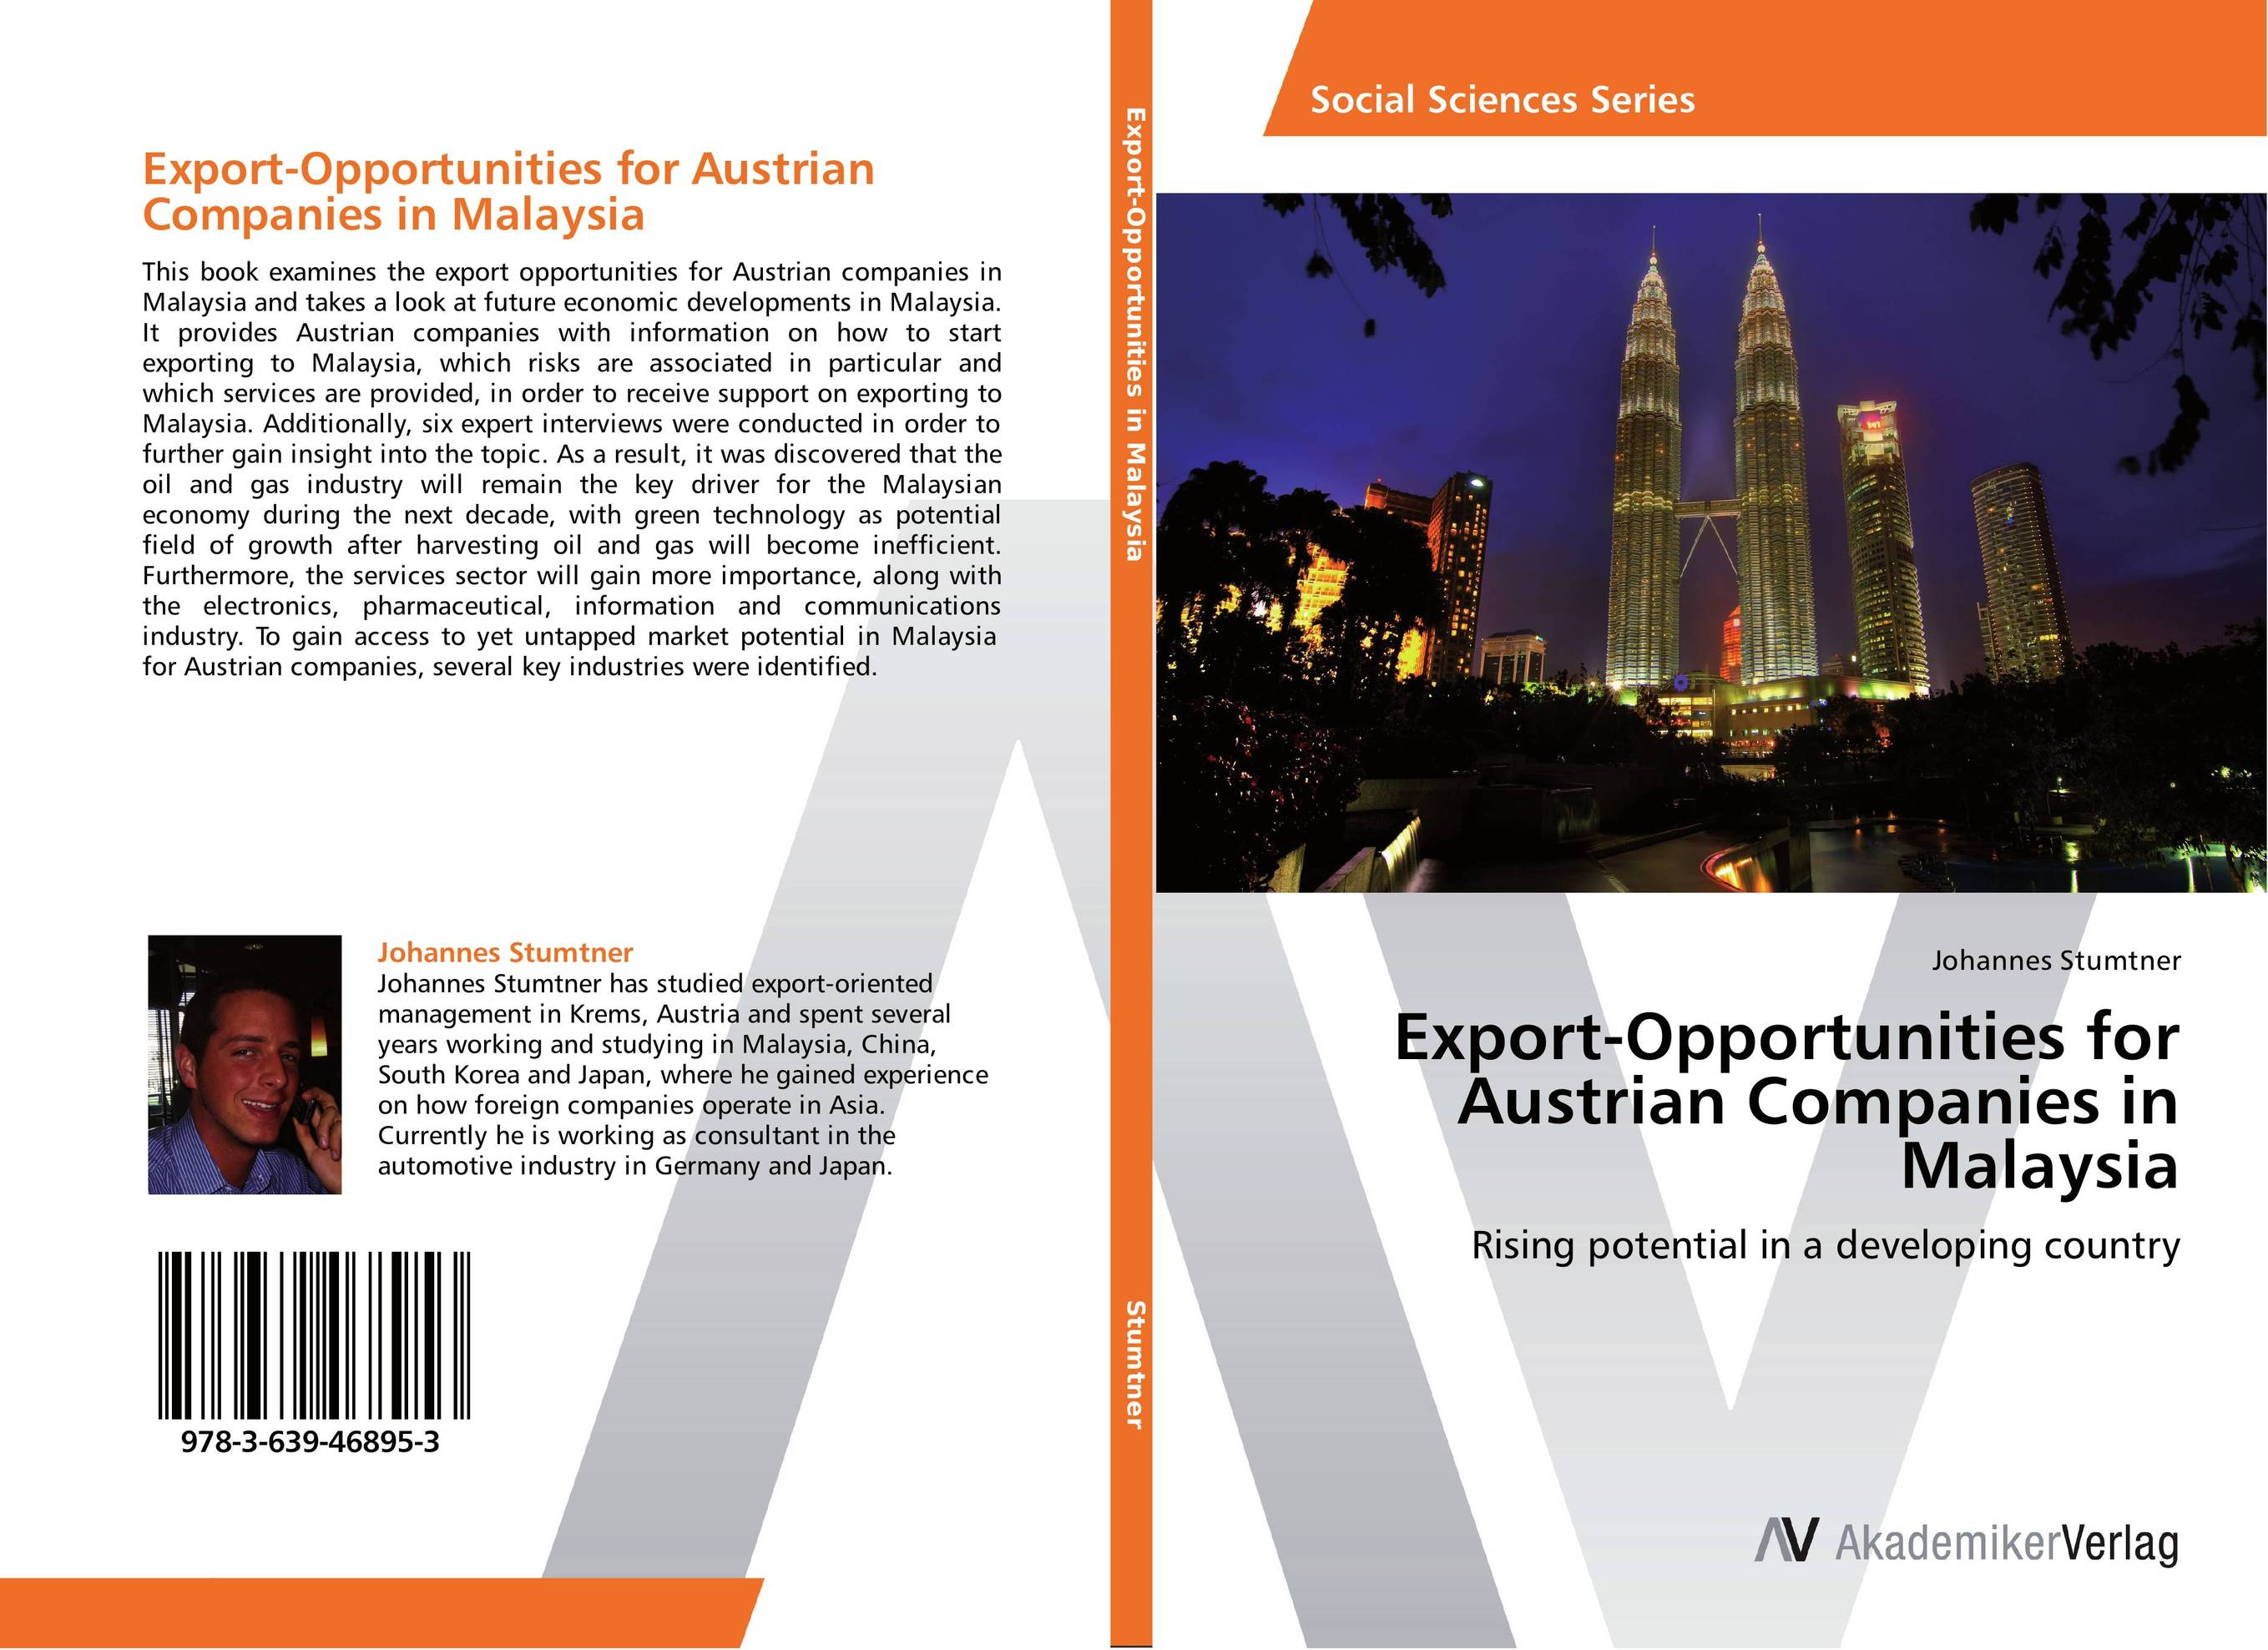 Export-Opportunities for Austrian Companies in Malaysia